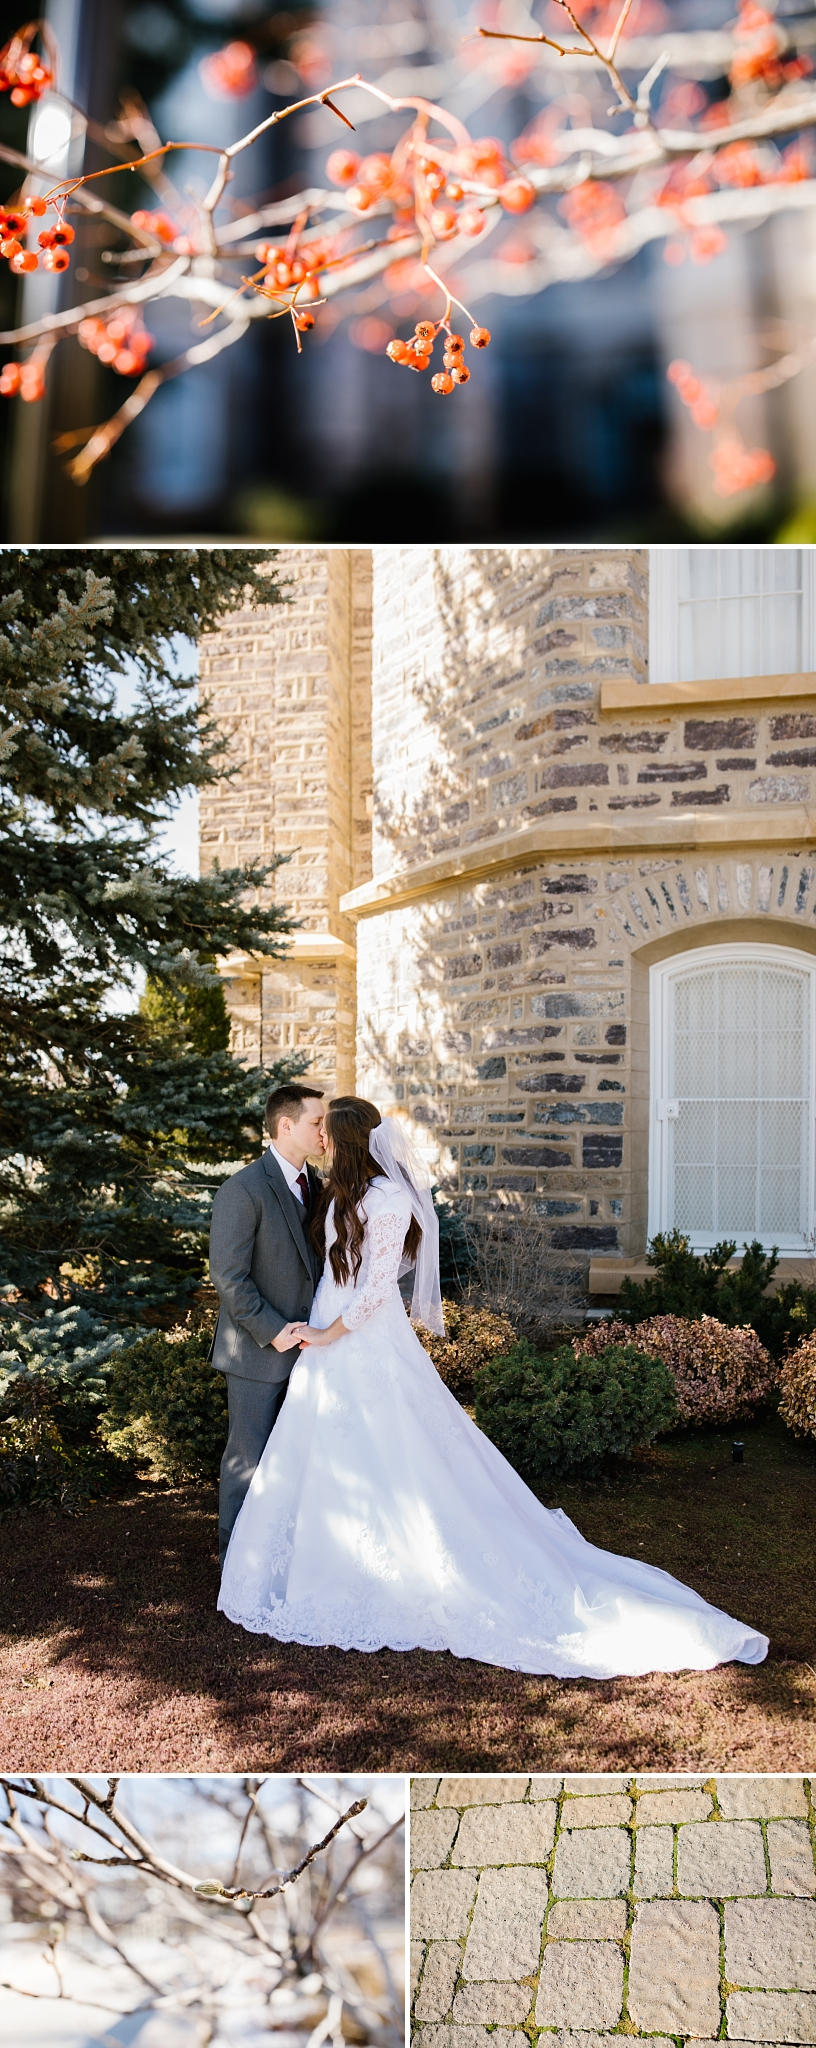 SS-Wedding-1_Lizzie-B-Imagery-Utah-Wedding-Photographer-Logan-Temple-Logan-Canyon-Mountain-Horse-Session.jpg